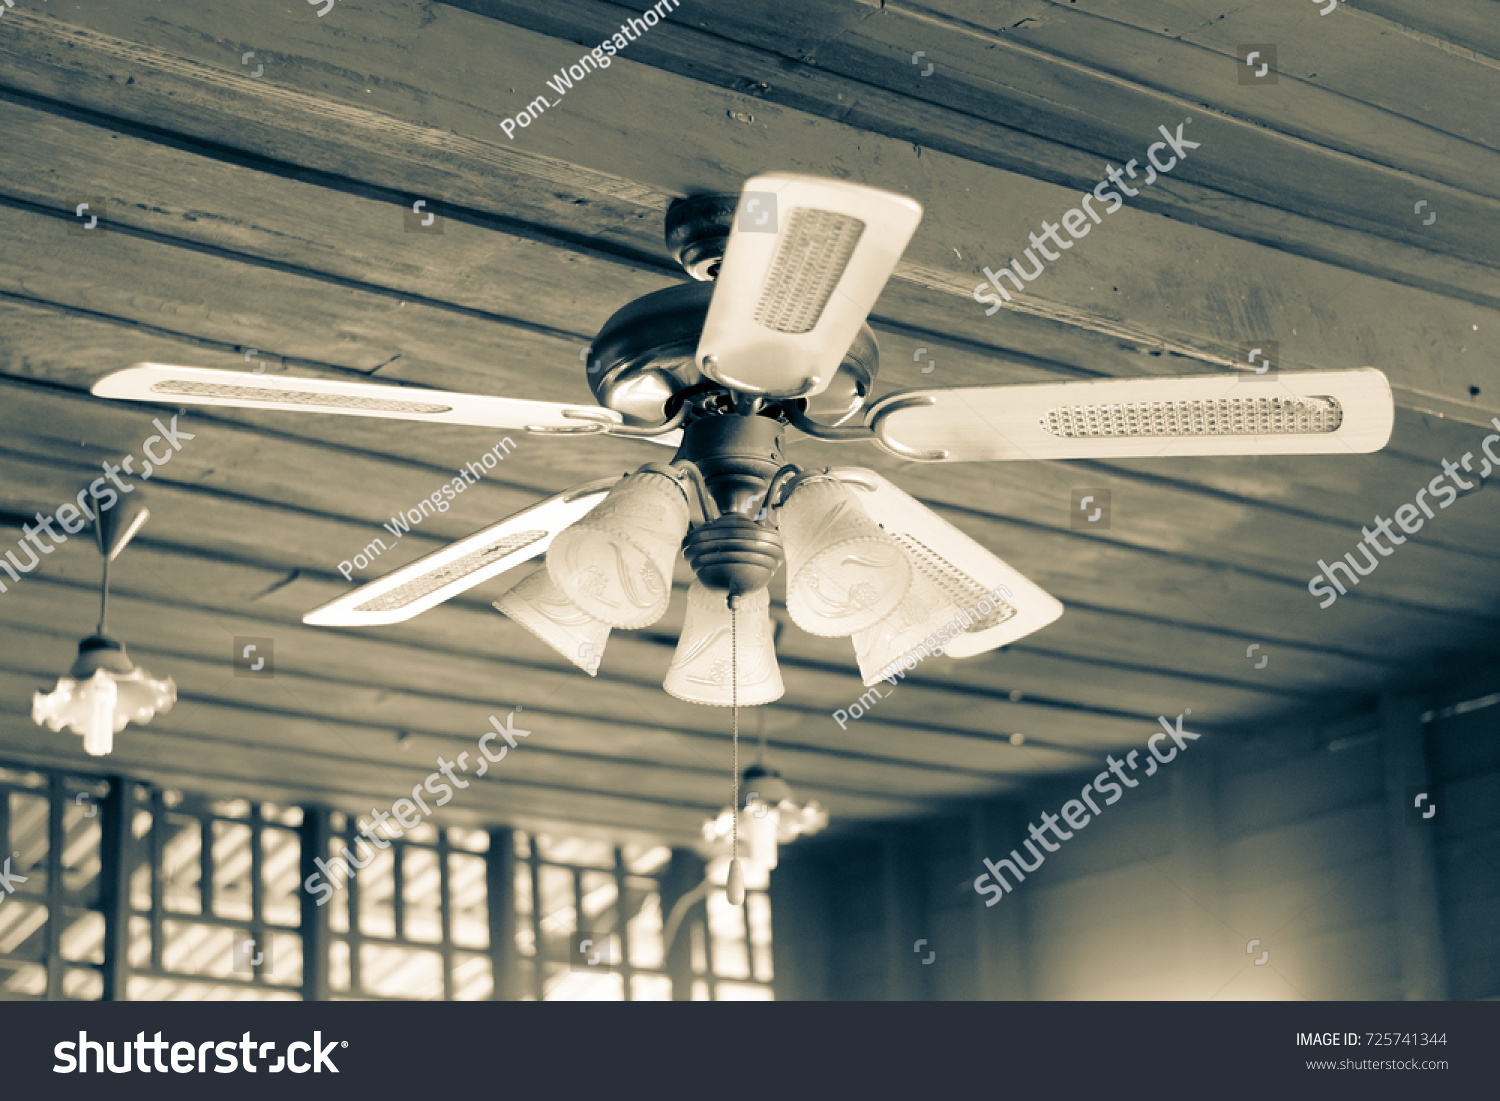 Vintage Style Old Ceiling Fan Lighting Stock Photo Edit Now 725741344